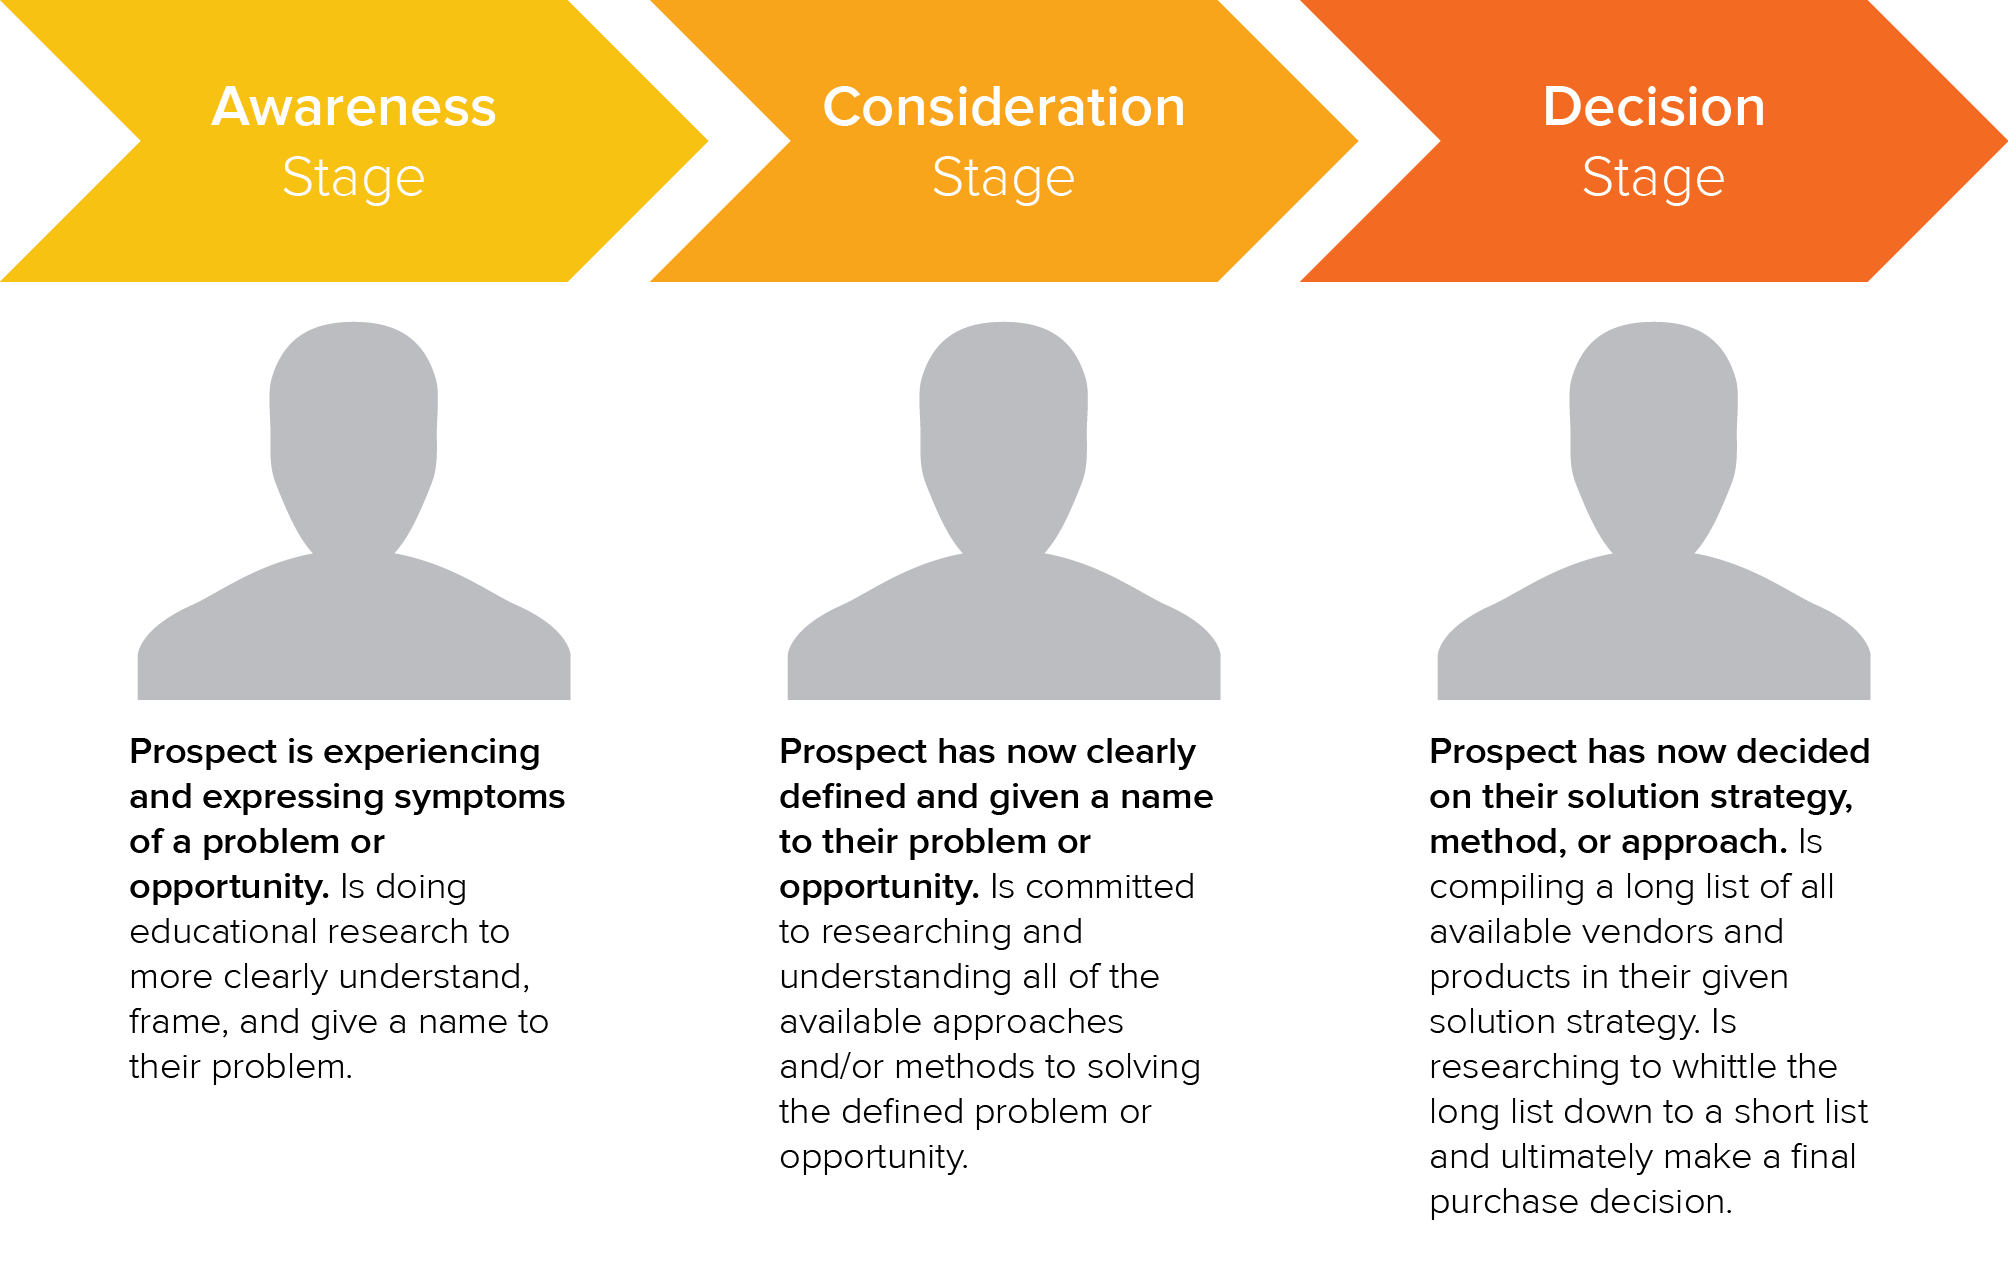 Consideration and decision stage of the buyer journey